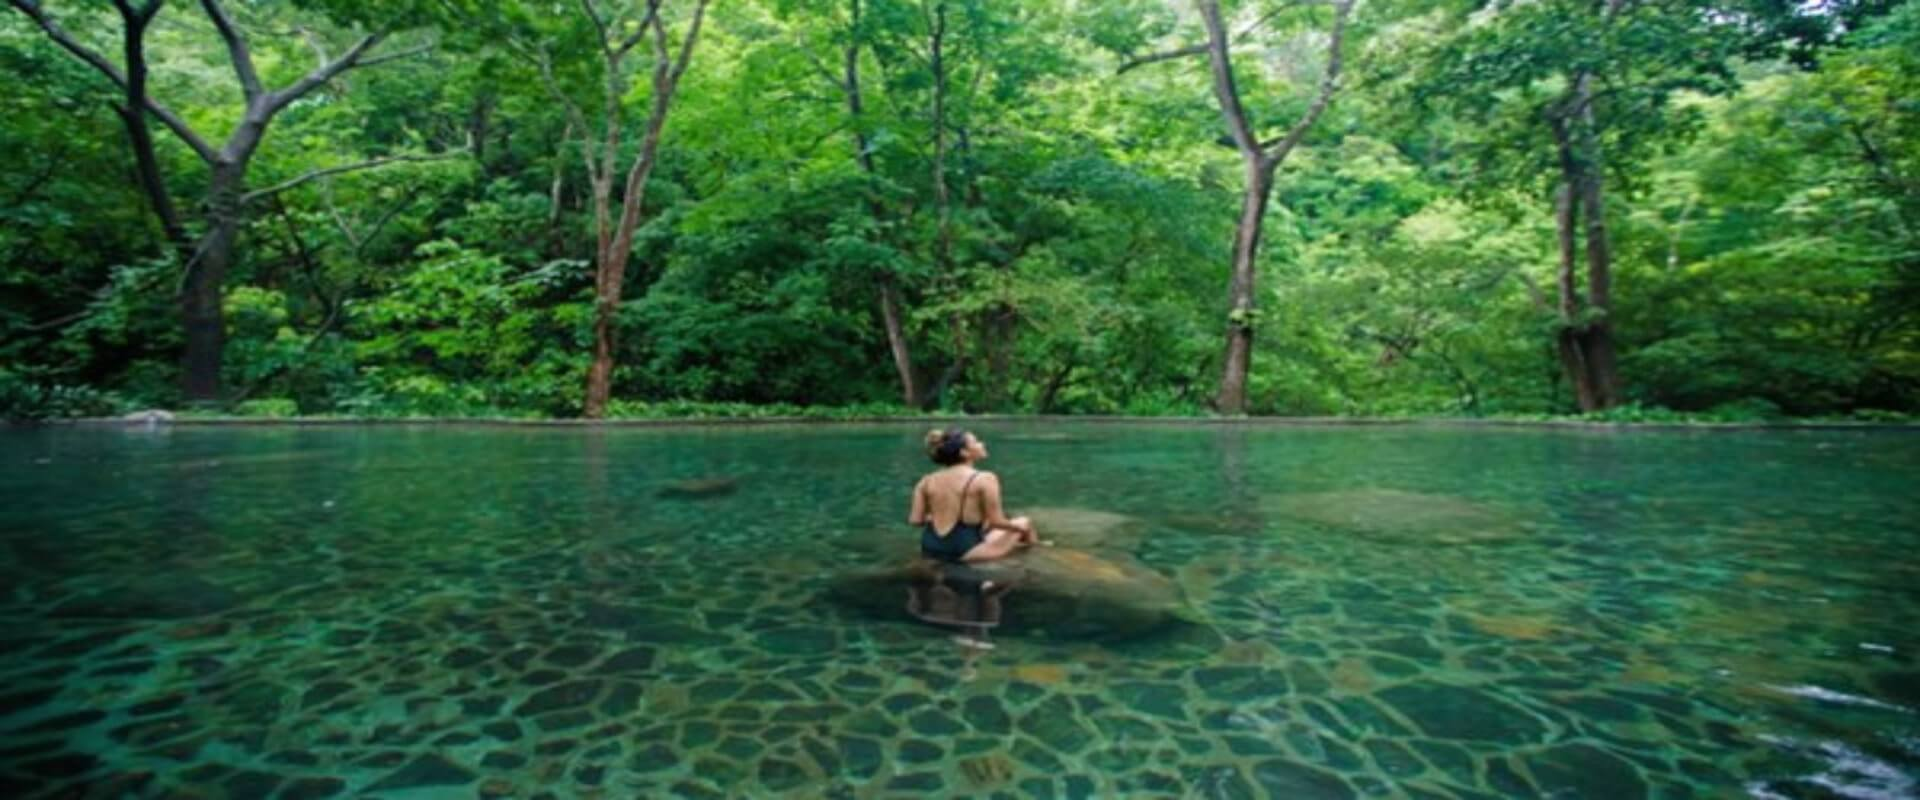 Vandara Hot Springs and Adventure Tour  | Costa Rica Jade Tours